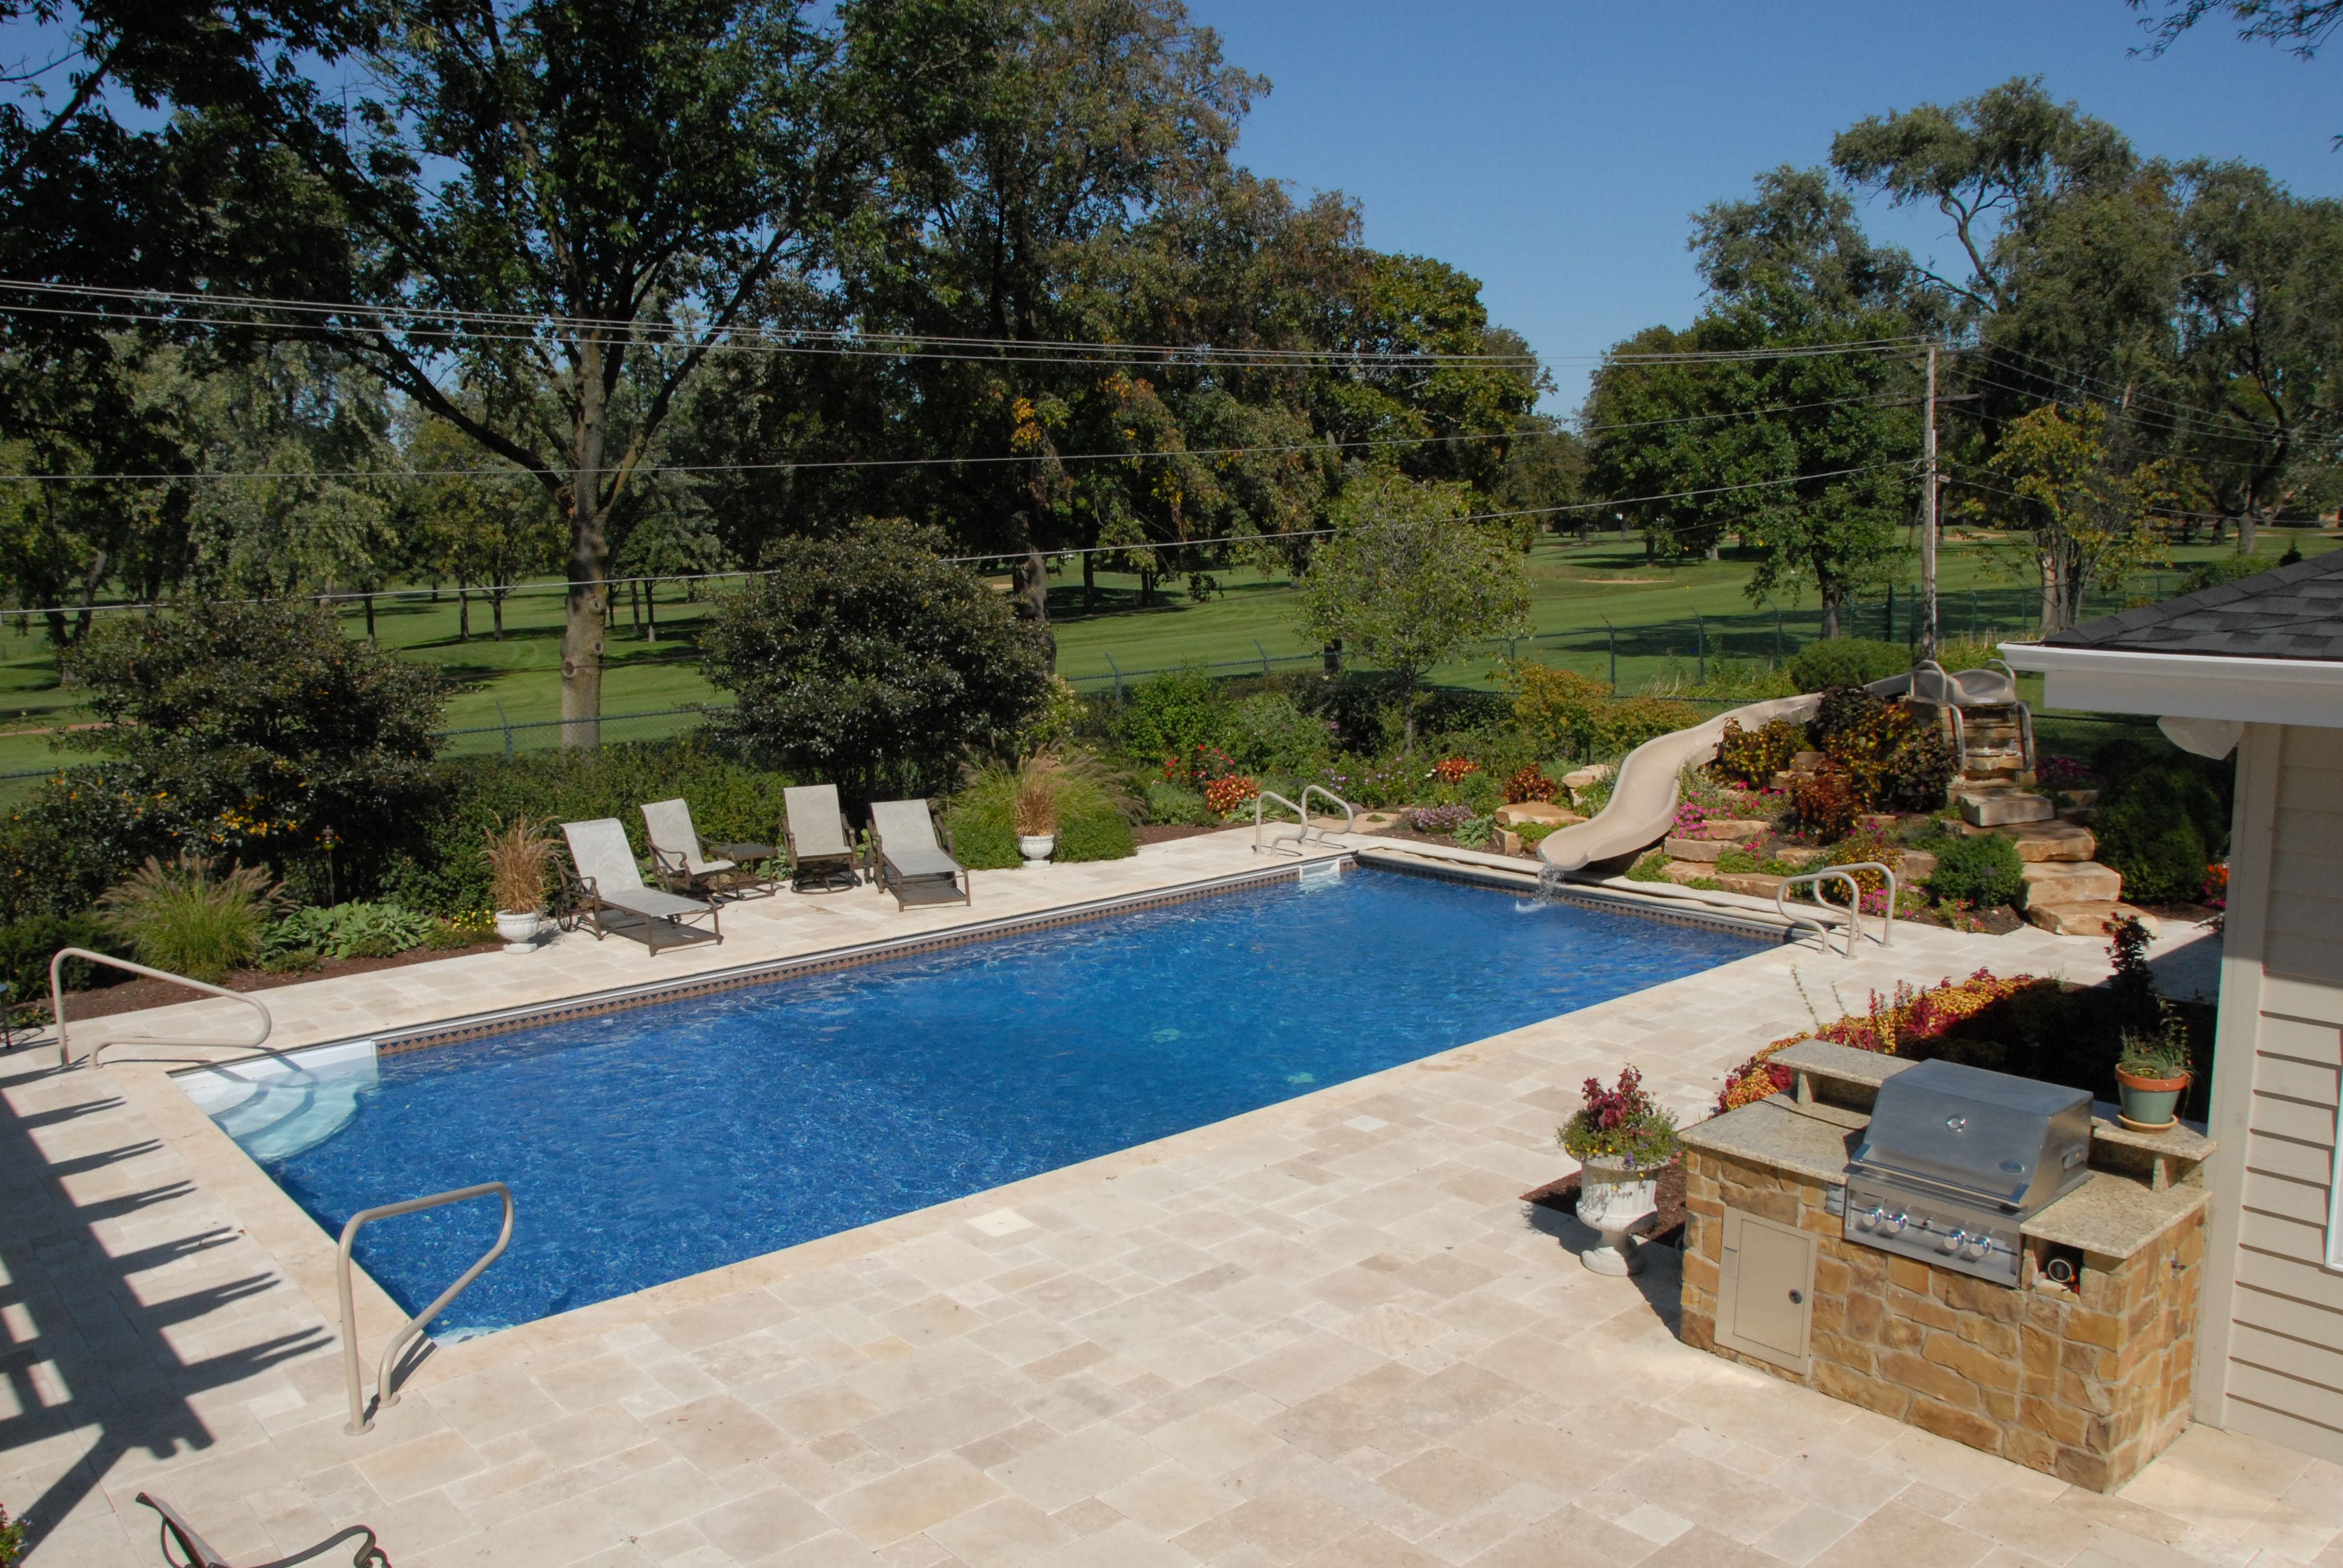 Vinyl Pool With A Custom Built Slide And Paver Brick Grill Area